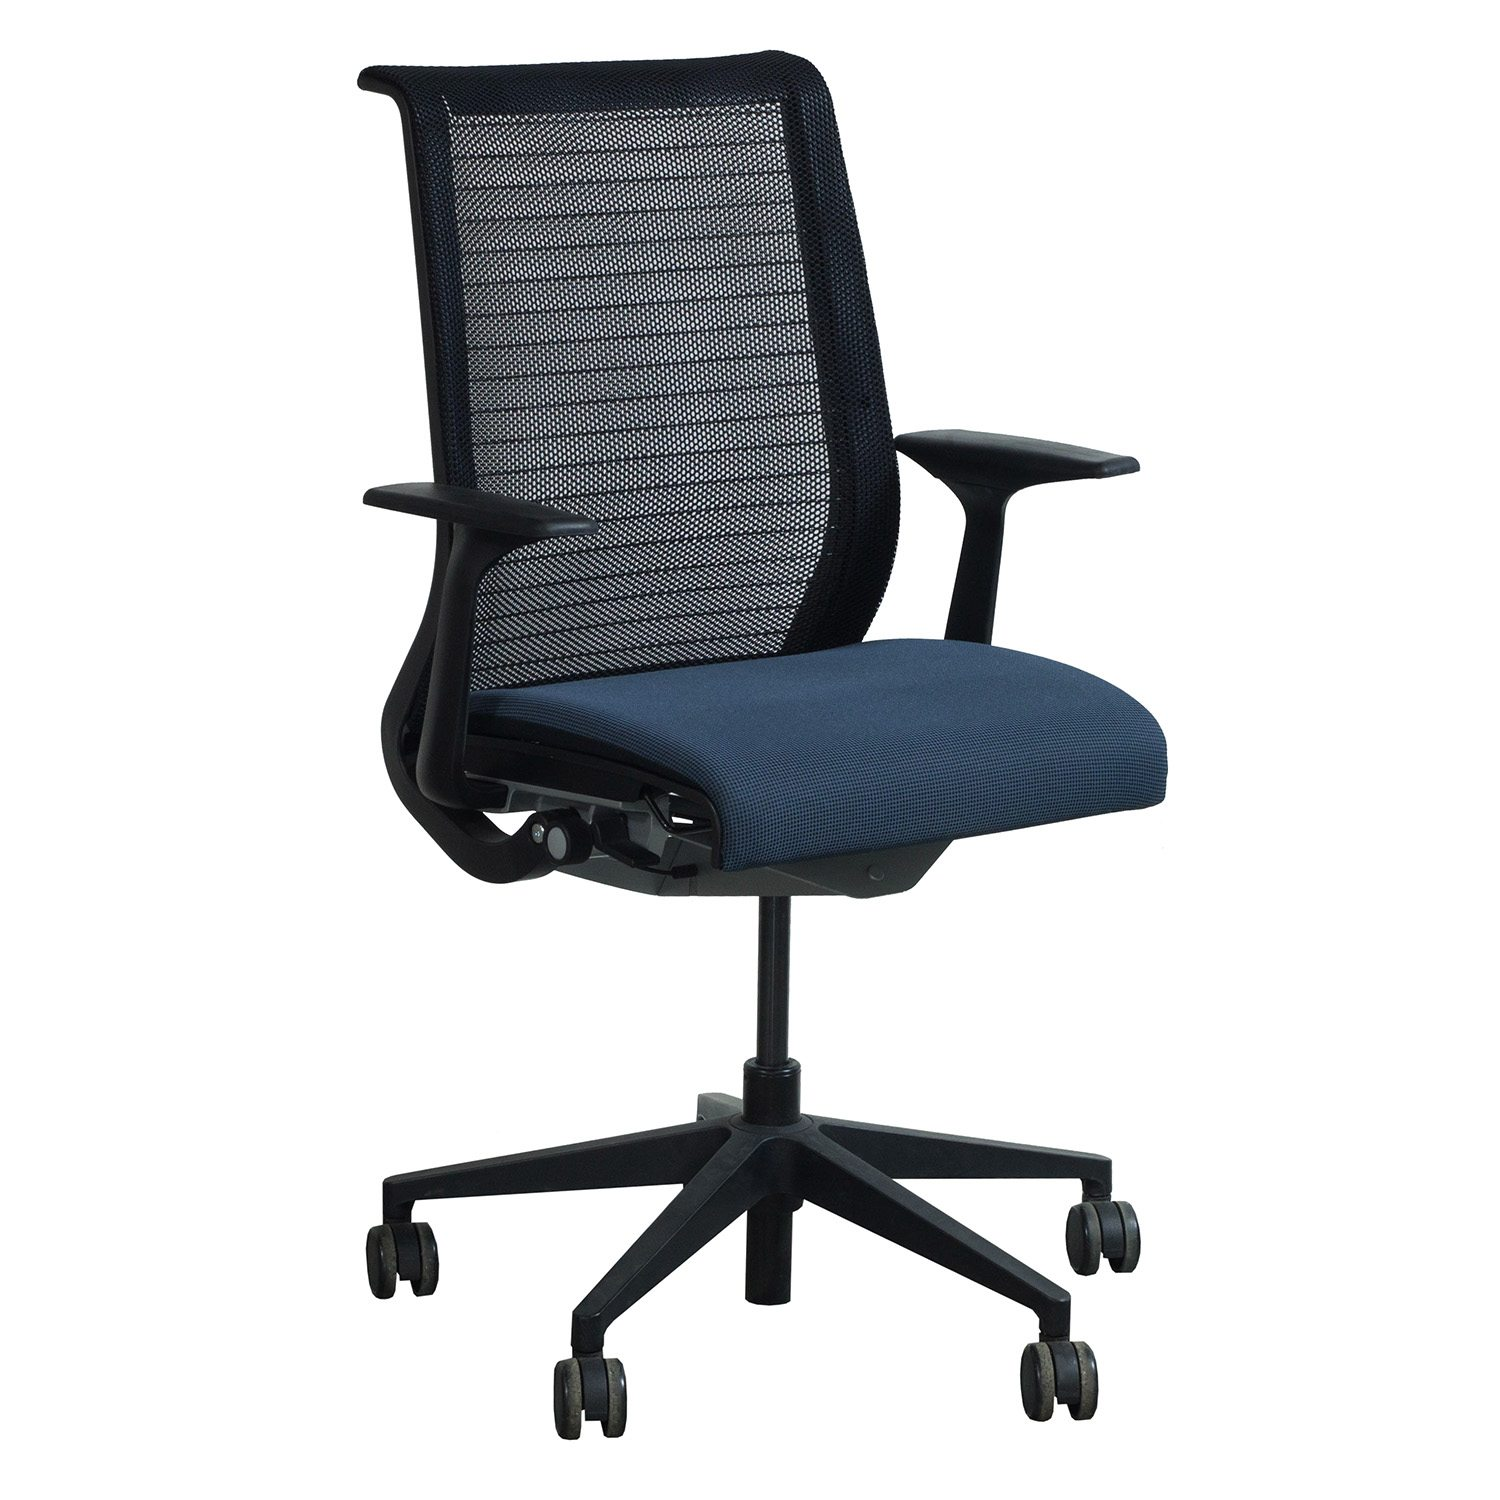 seat covers for chairs with arms coleman max camping chair steelcase think used black back mesh conference